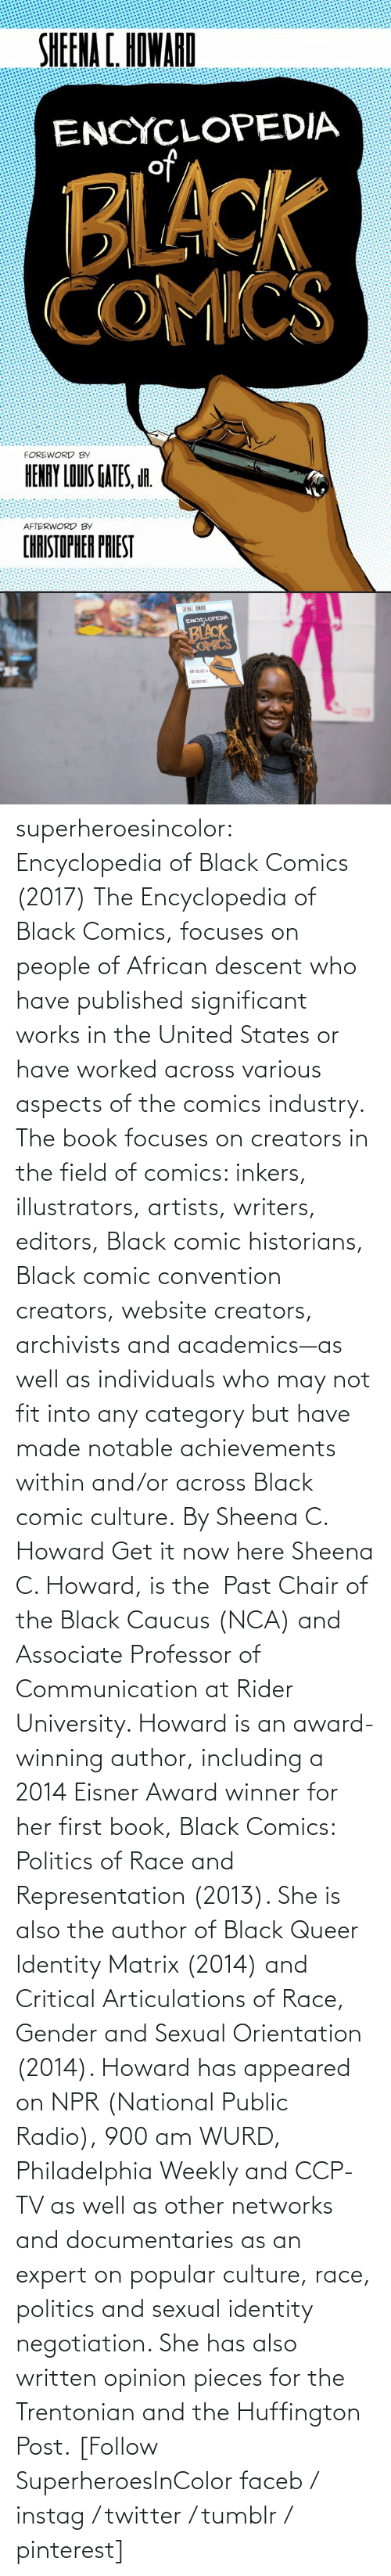 Howard: superheroesincolor: Encyclopedia of Black Comics (2017) The Encyclopedia of Black Comics, focuses on people of African descent who have published significant works in the United States or have worked across various aspects of the comics industry.  The book focuses on creators in the field of comics: inkers, illustrators, artists, writers, editors, Black comic historians, Black comic convention creators, website creators, archivists and academics—as well as individuals who may not fit into any category but have made notable achievements within and/or across Black comic culture. By Sheena C. Howard Get it now here  Sheena C. Howard, is the  Past Chair of the Black Caucus (NCA) and Associate Professor of Communication at Rider University. Howard is an award-winning author, including a 2014 Eisner Award winner for her first book, Black Comics: Politics of Race and Representation (2013). She is also the author of Black Queer Identity Matrix (2014) and Critical Articulations of Race, Gender and Sexual Orientation (2014). Howard has appeared on NPR (National Public Radio), 900 am WURD, Philadelphia Weekly and CCP-TV as well as other networks and documentaries as an expert on popular culture, race, politics and sexual identity negotiation. She has also written opinion pieces for the Trentonian and the Huffington Post.   [Follow SuperheroesInColor faceb / instag / twitter / tumblr / pinterest]